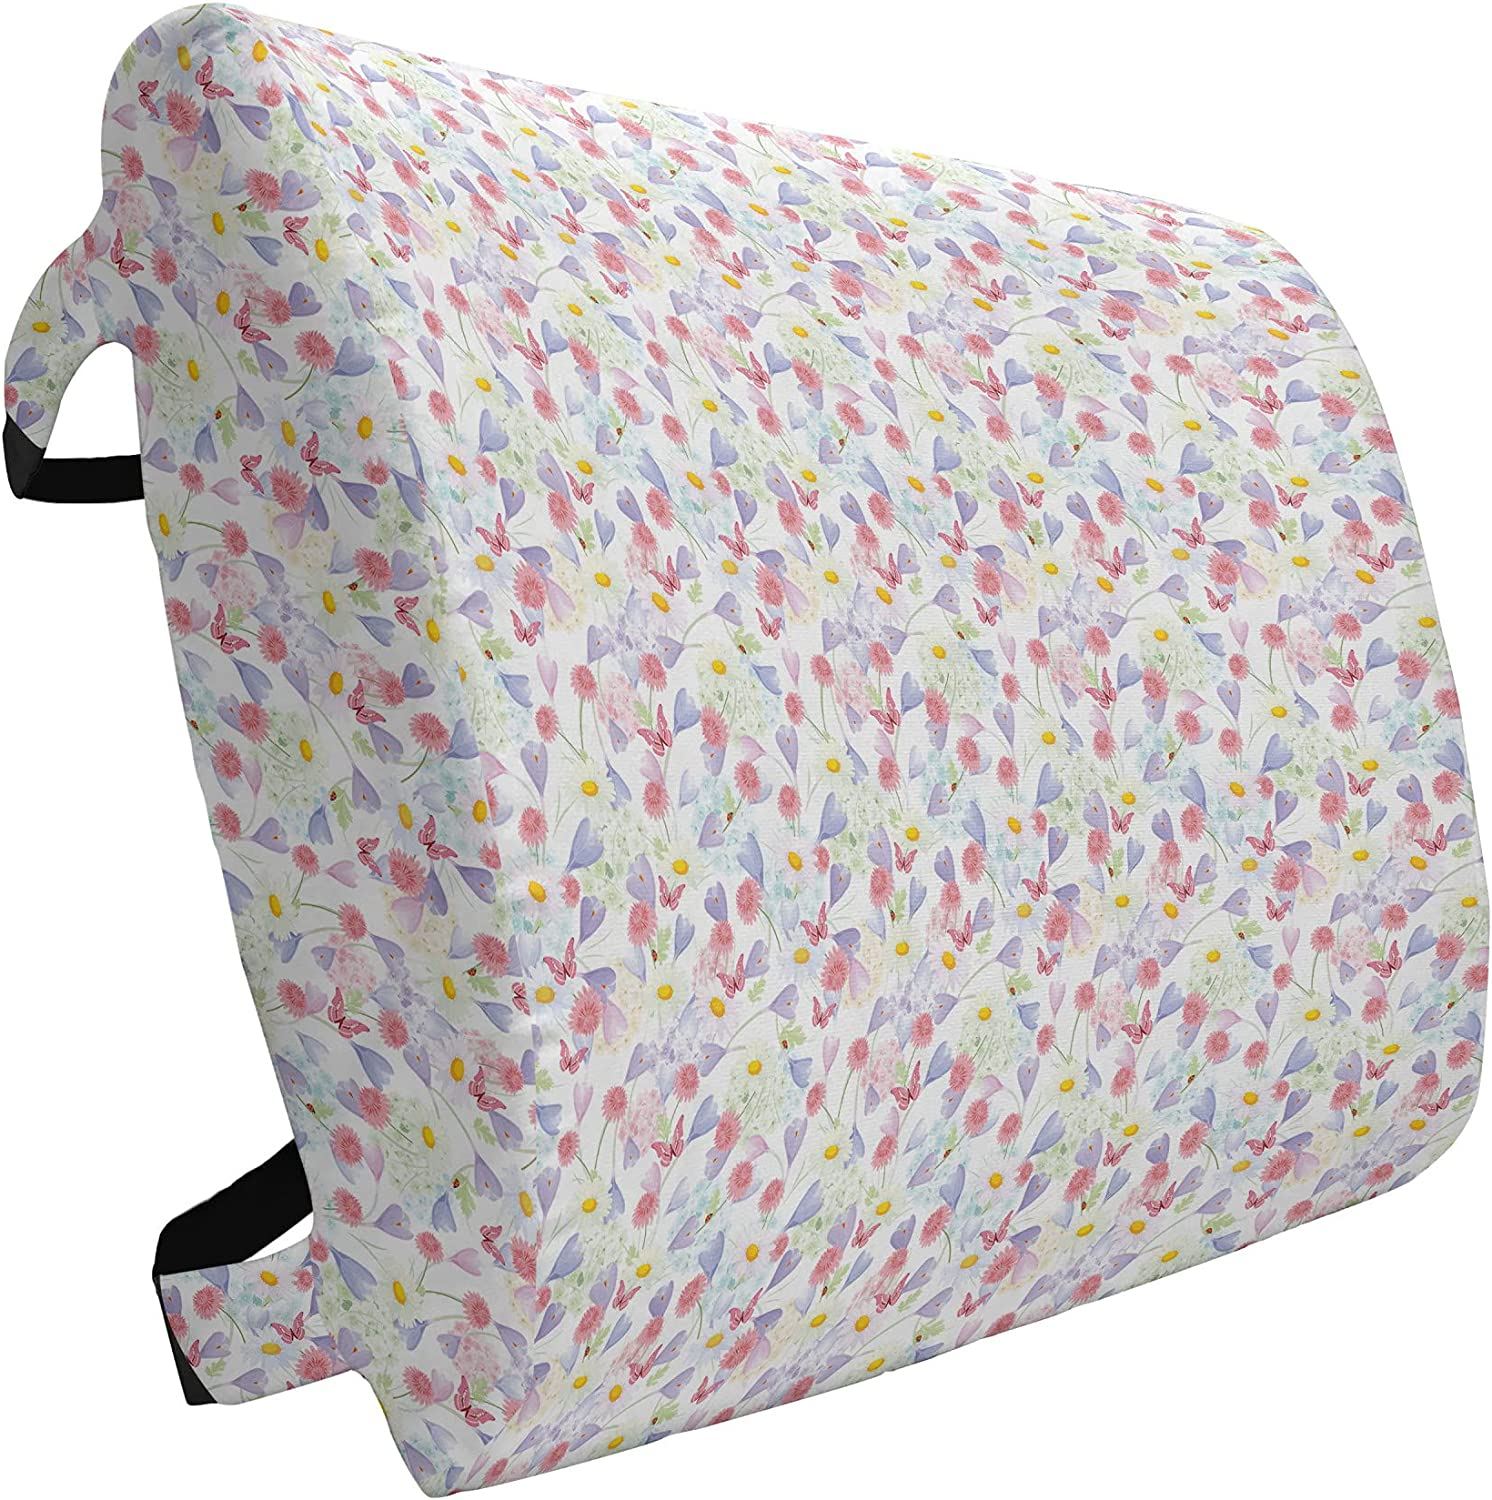 Lunarable Floral Lumbar Max 60% Be super welcome OFF Pillow Dreamy Butterf Flourishes Summer